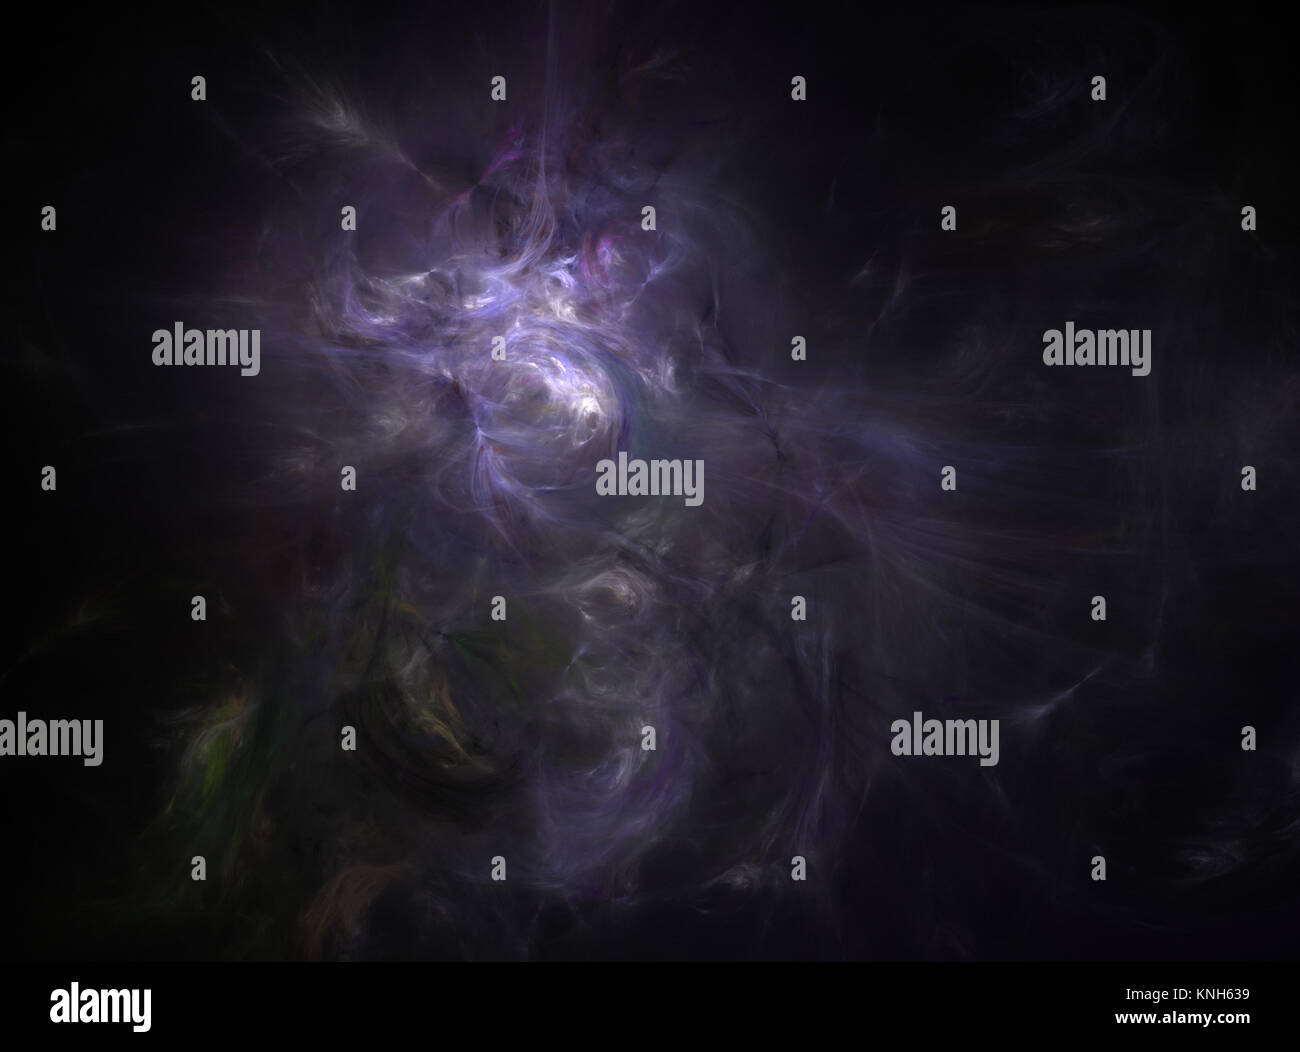 Flame fractal digitally generated nebula Stock Photo